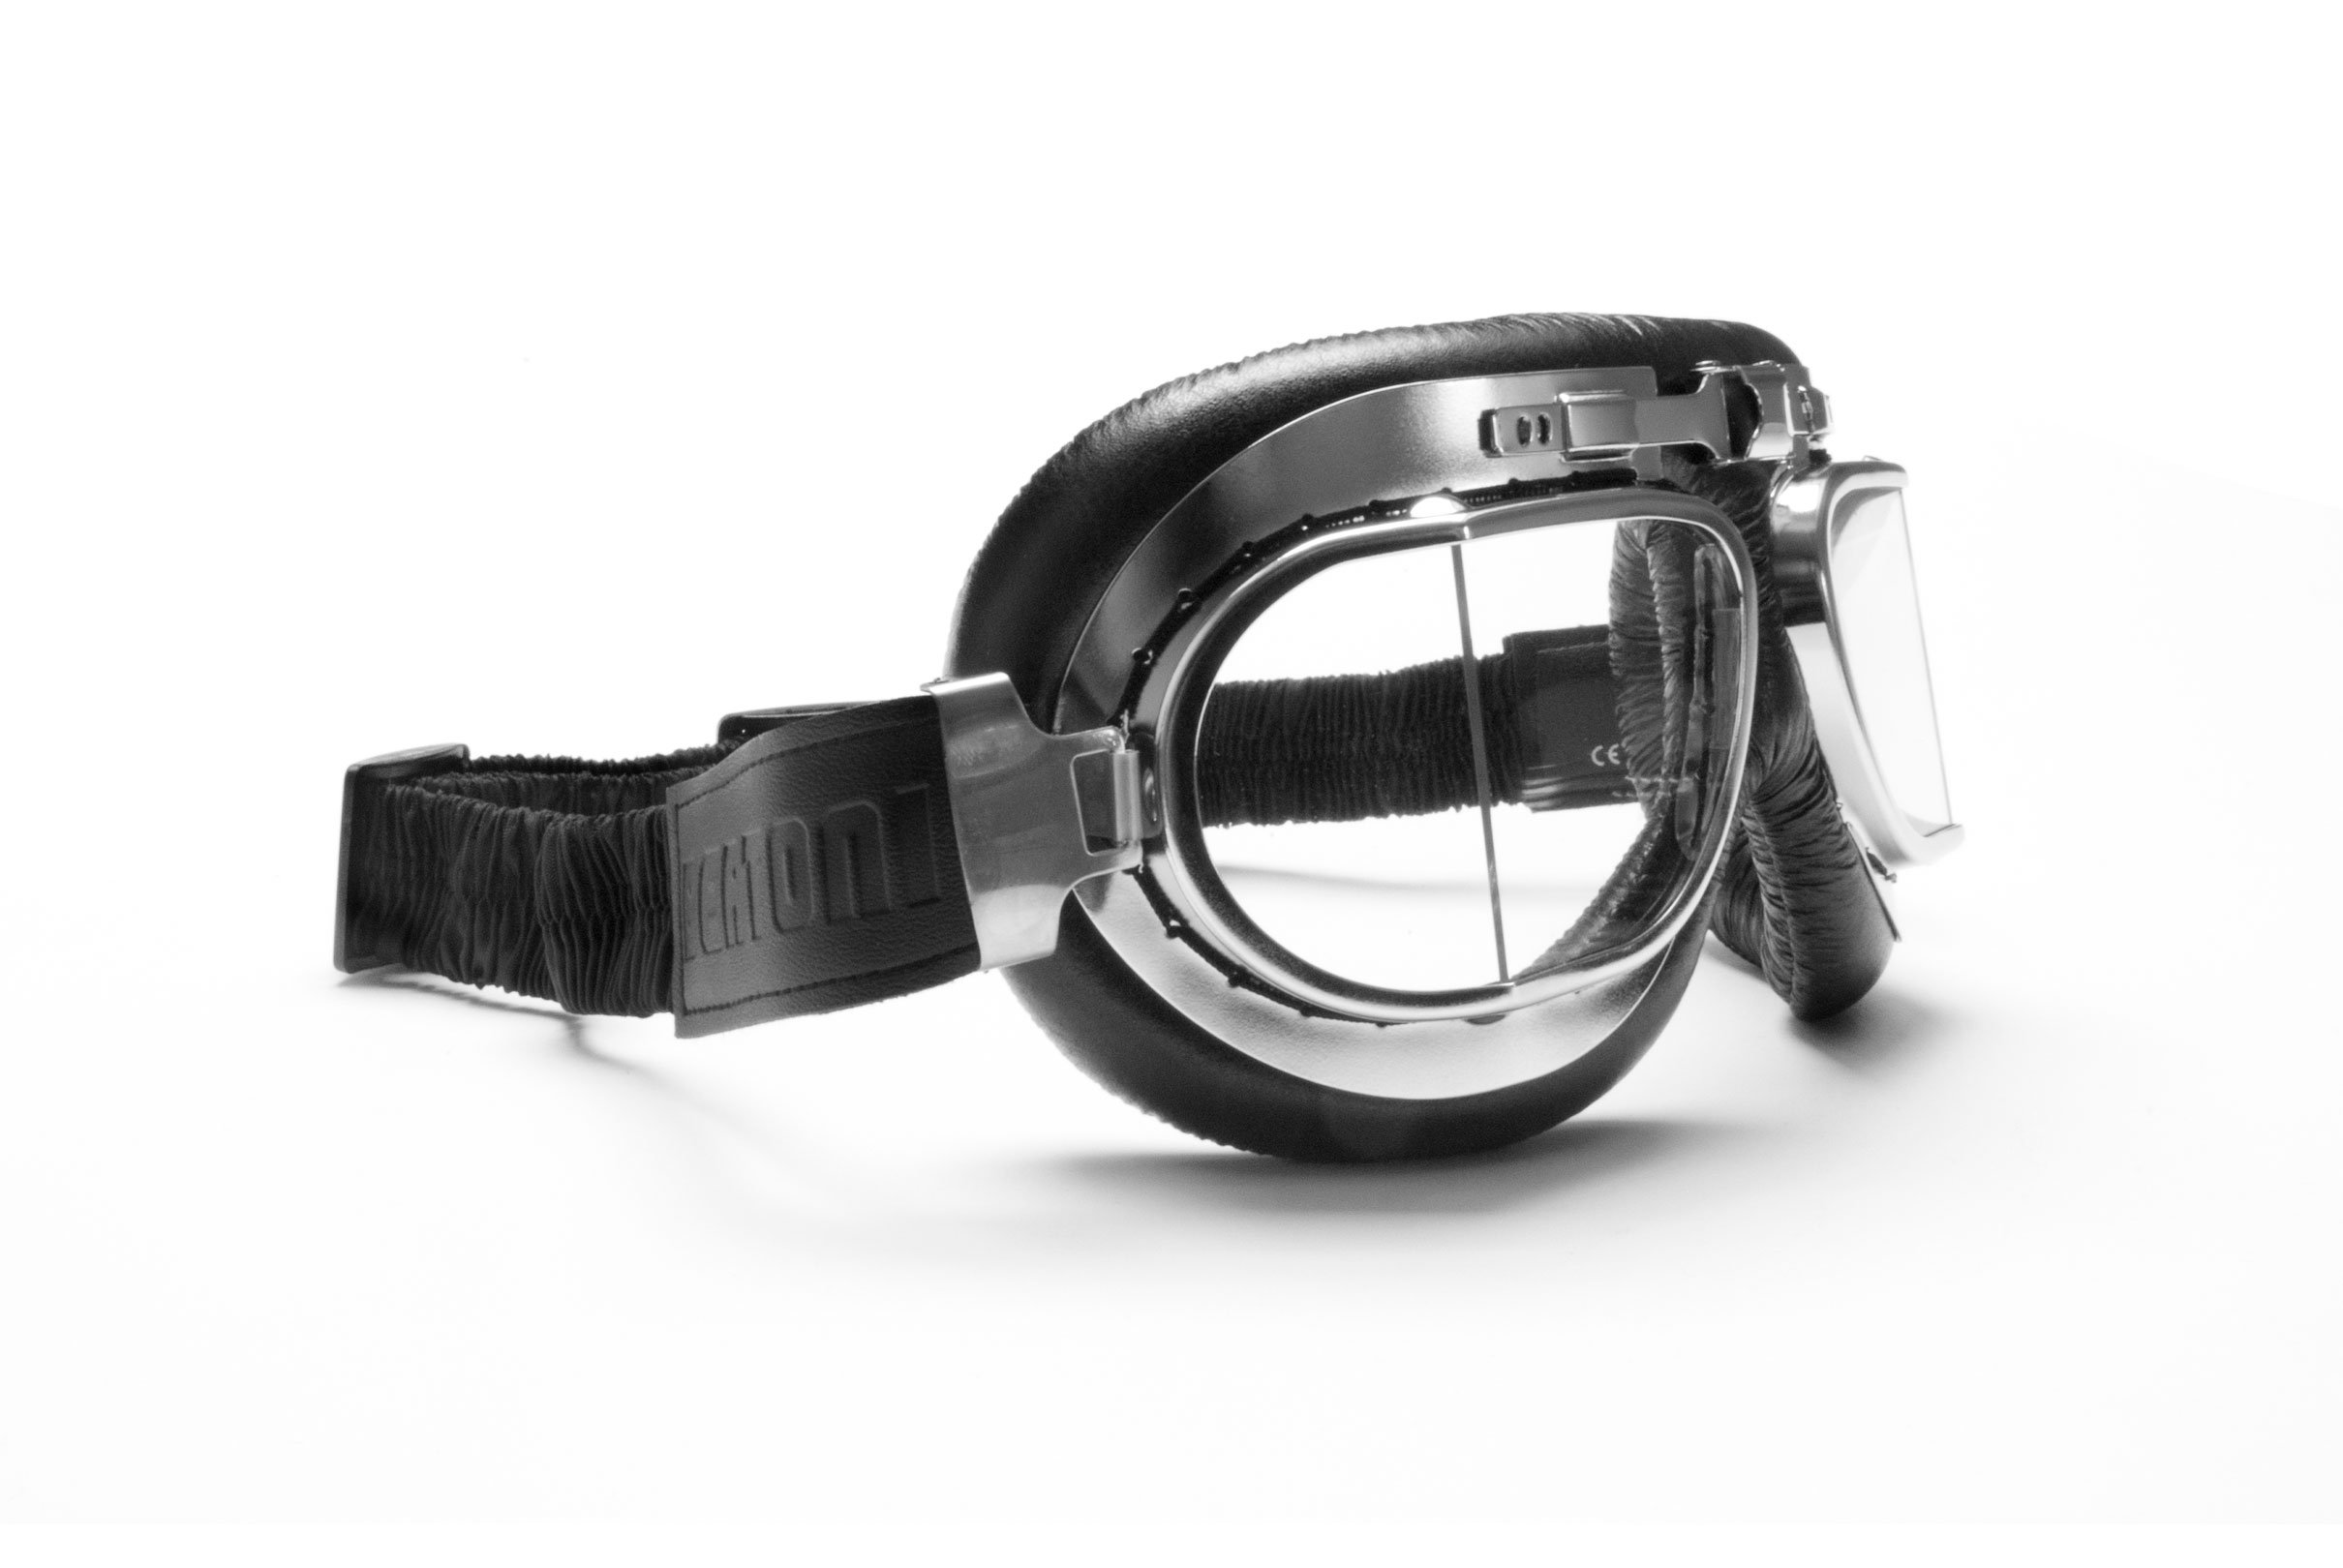 c96fca88c1ef Vintage Motorcycle Goggles with Antifog and Anticrash Squared Lenses -  Chromed Steel Frame - by Bertoni